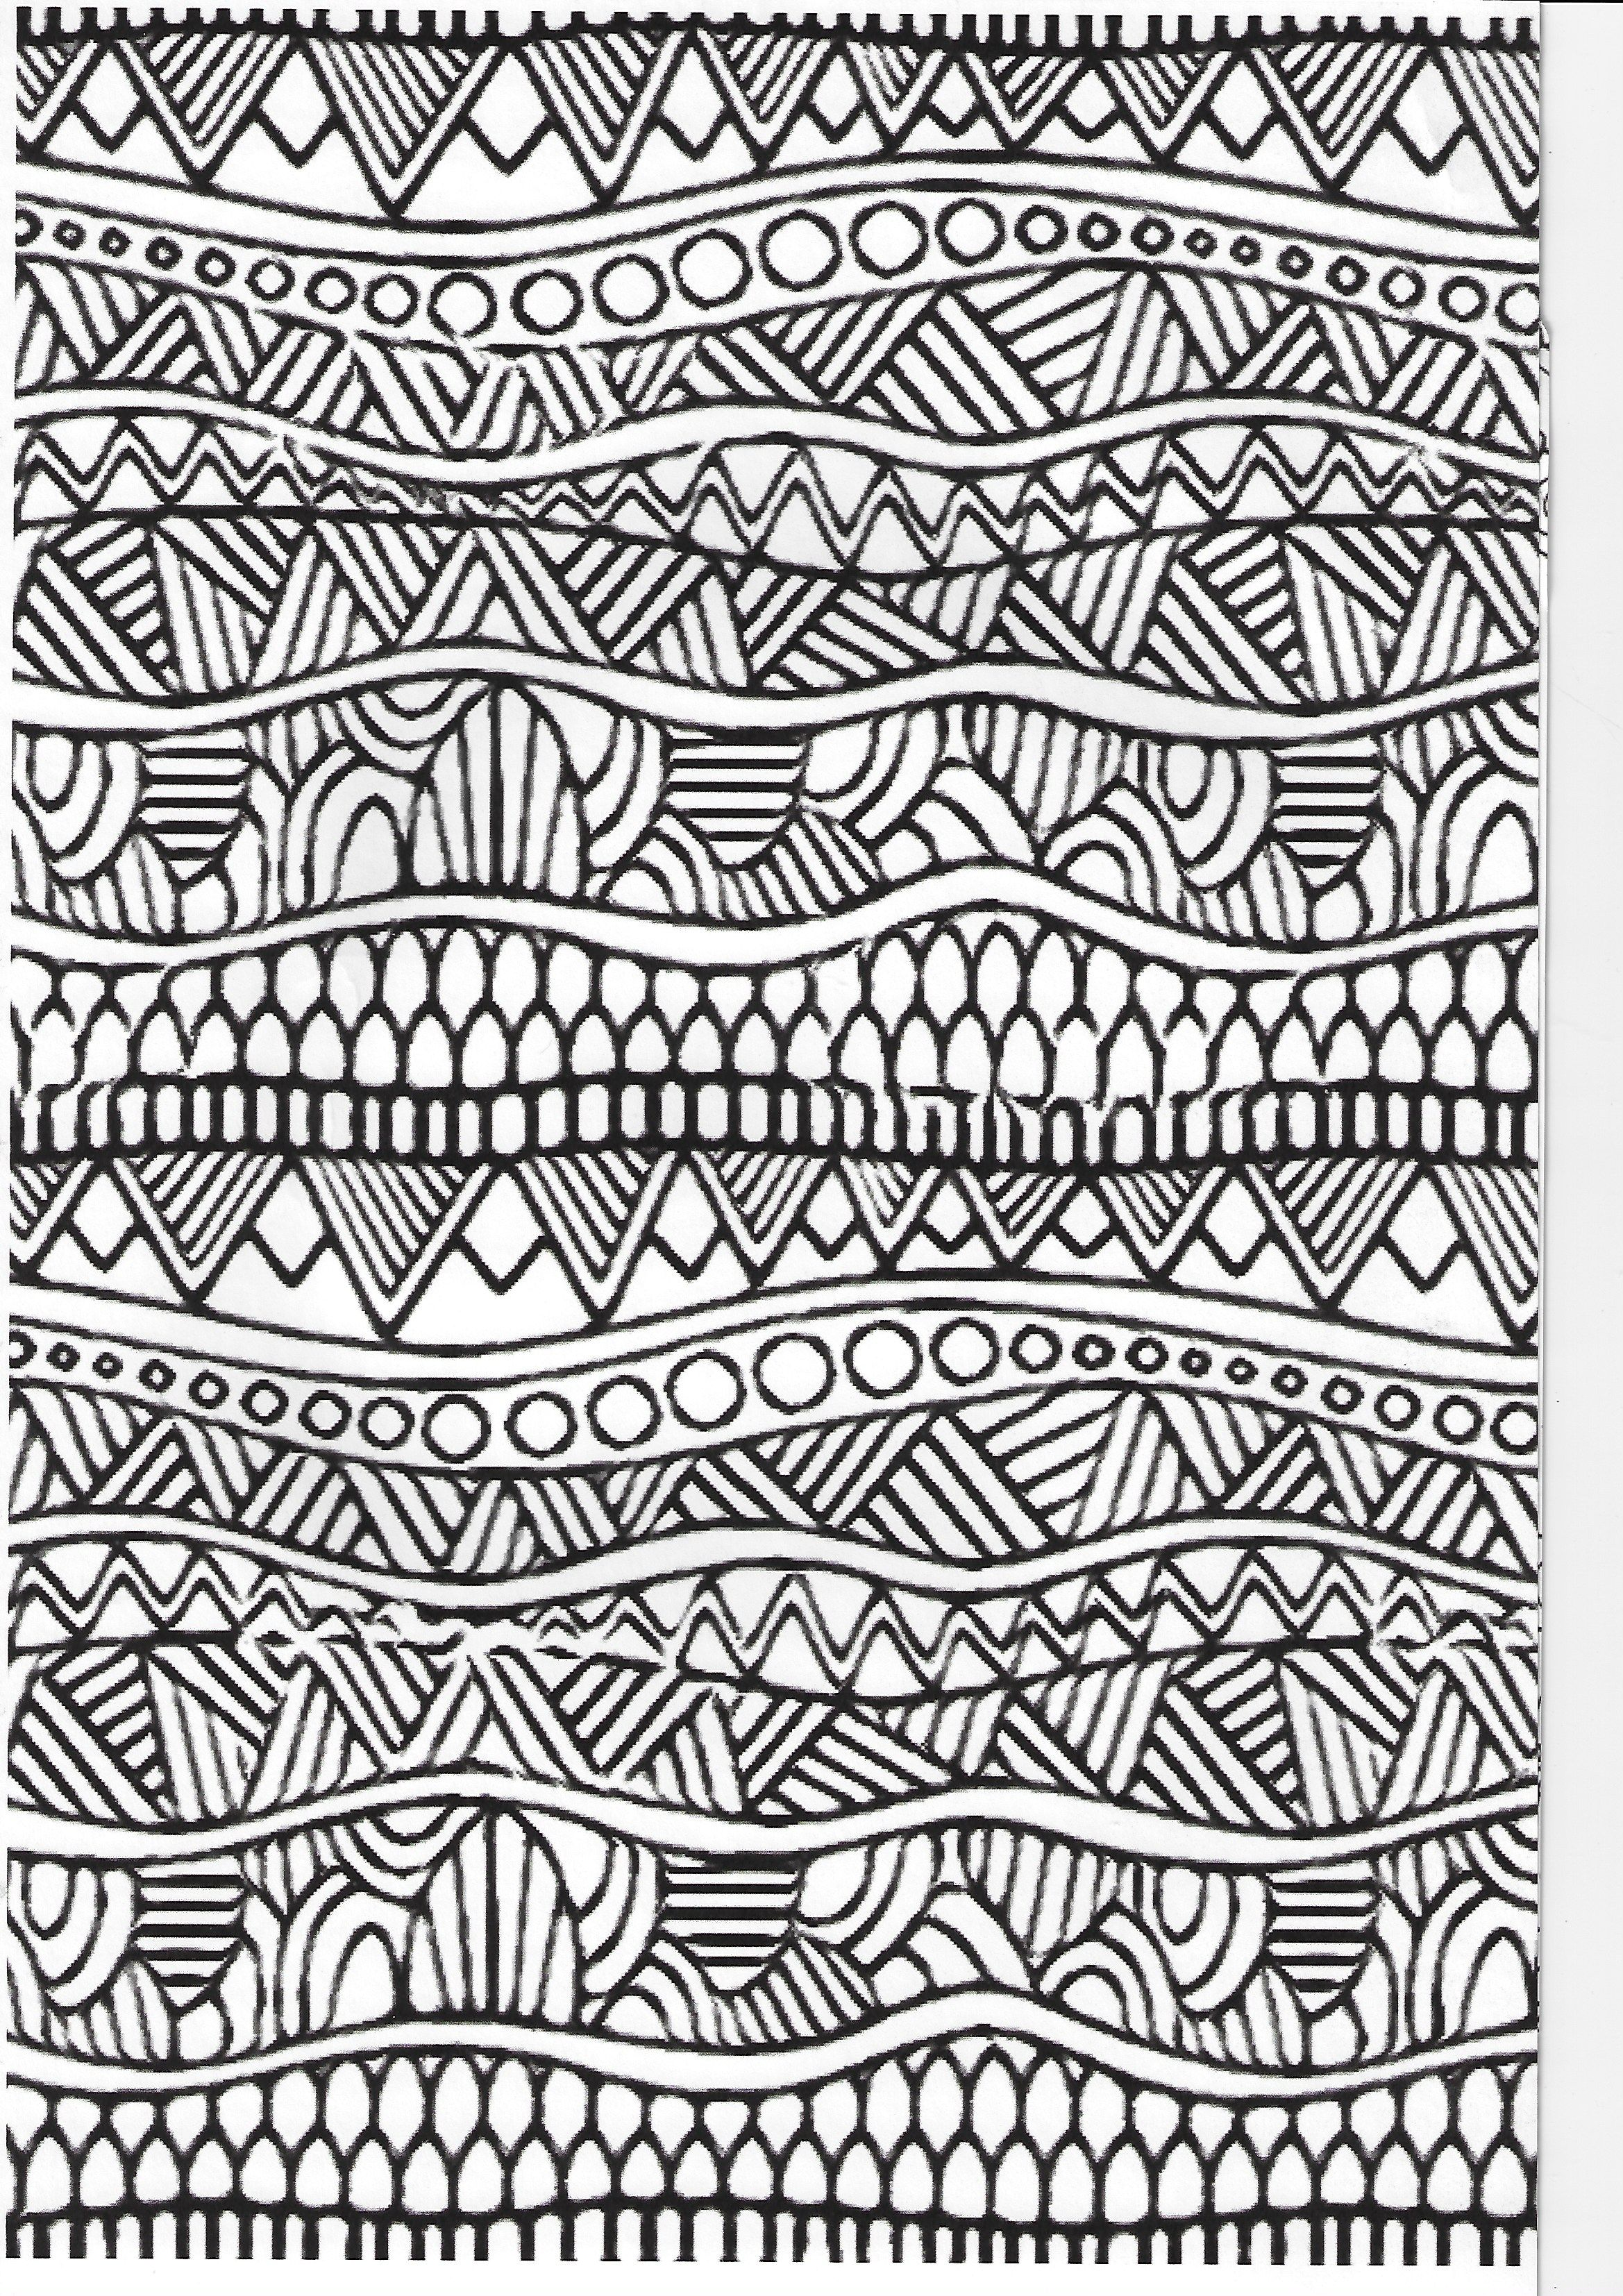 Pin By Lala Dewitt On Lines Patterns Coloring Pages Zentangle